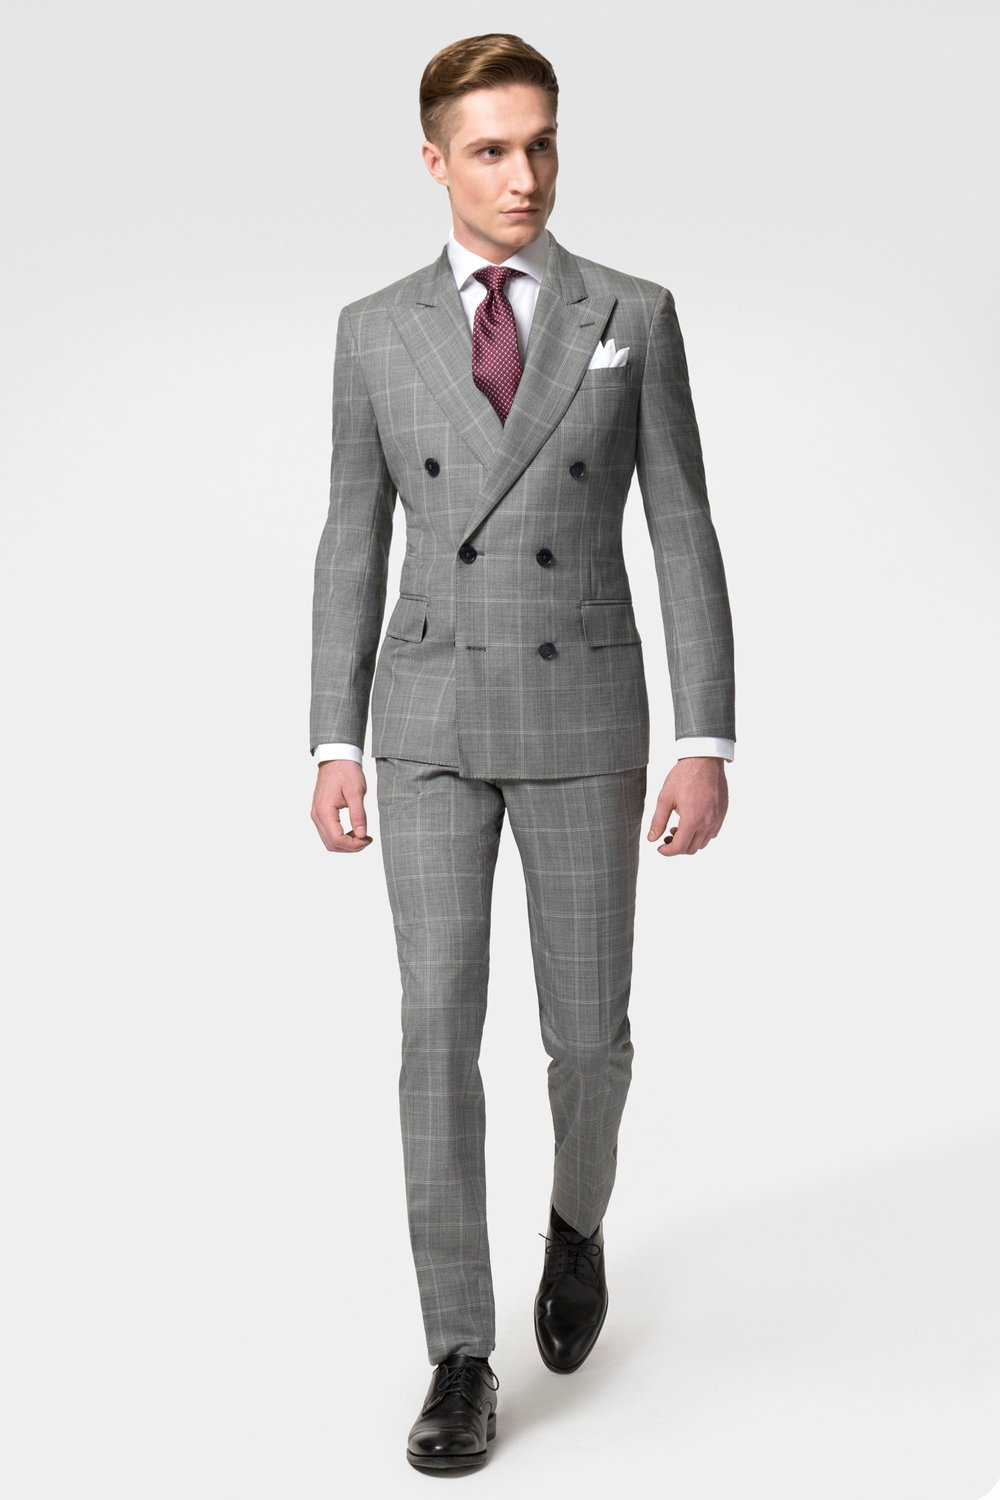 La mode savant  - An understanding of the basics goes a long way in making a unique office look. Watch for details and layers in this windowpane charcoal bespoke suit combo. We use  wardrobe essentials as accents to dress up this daily look.